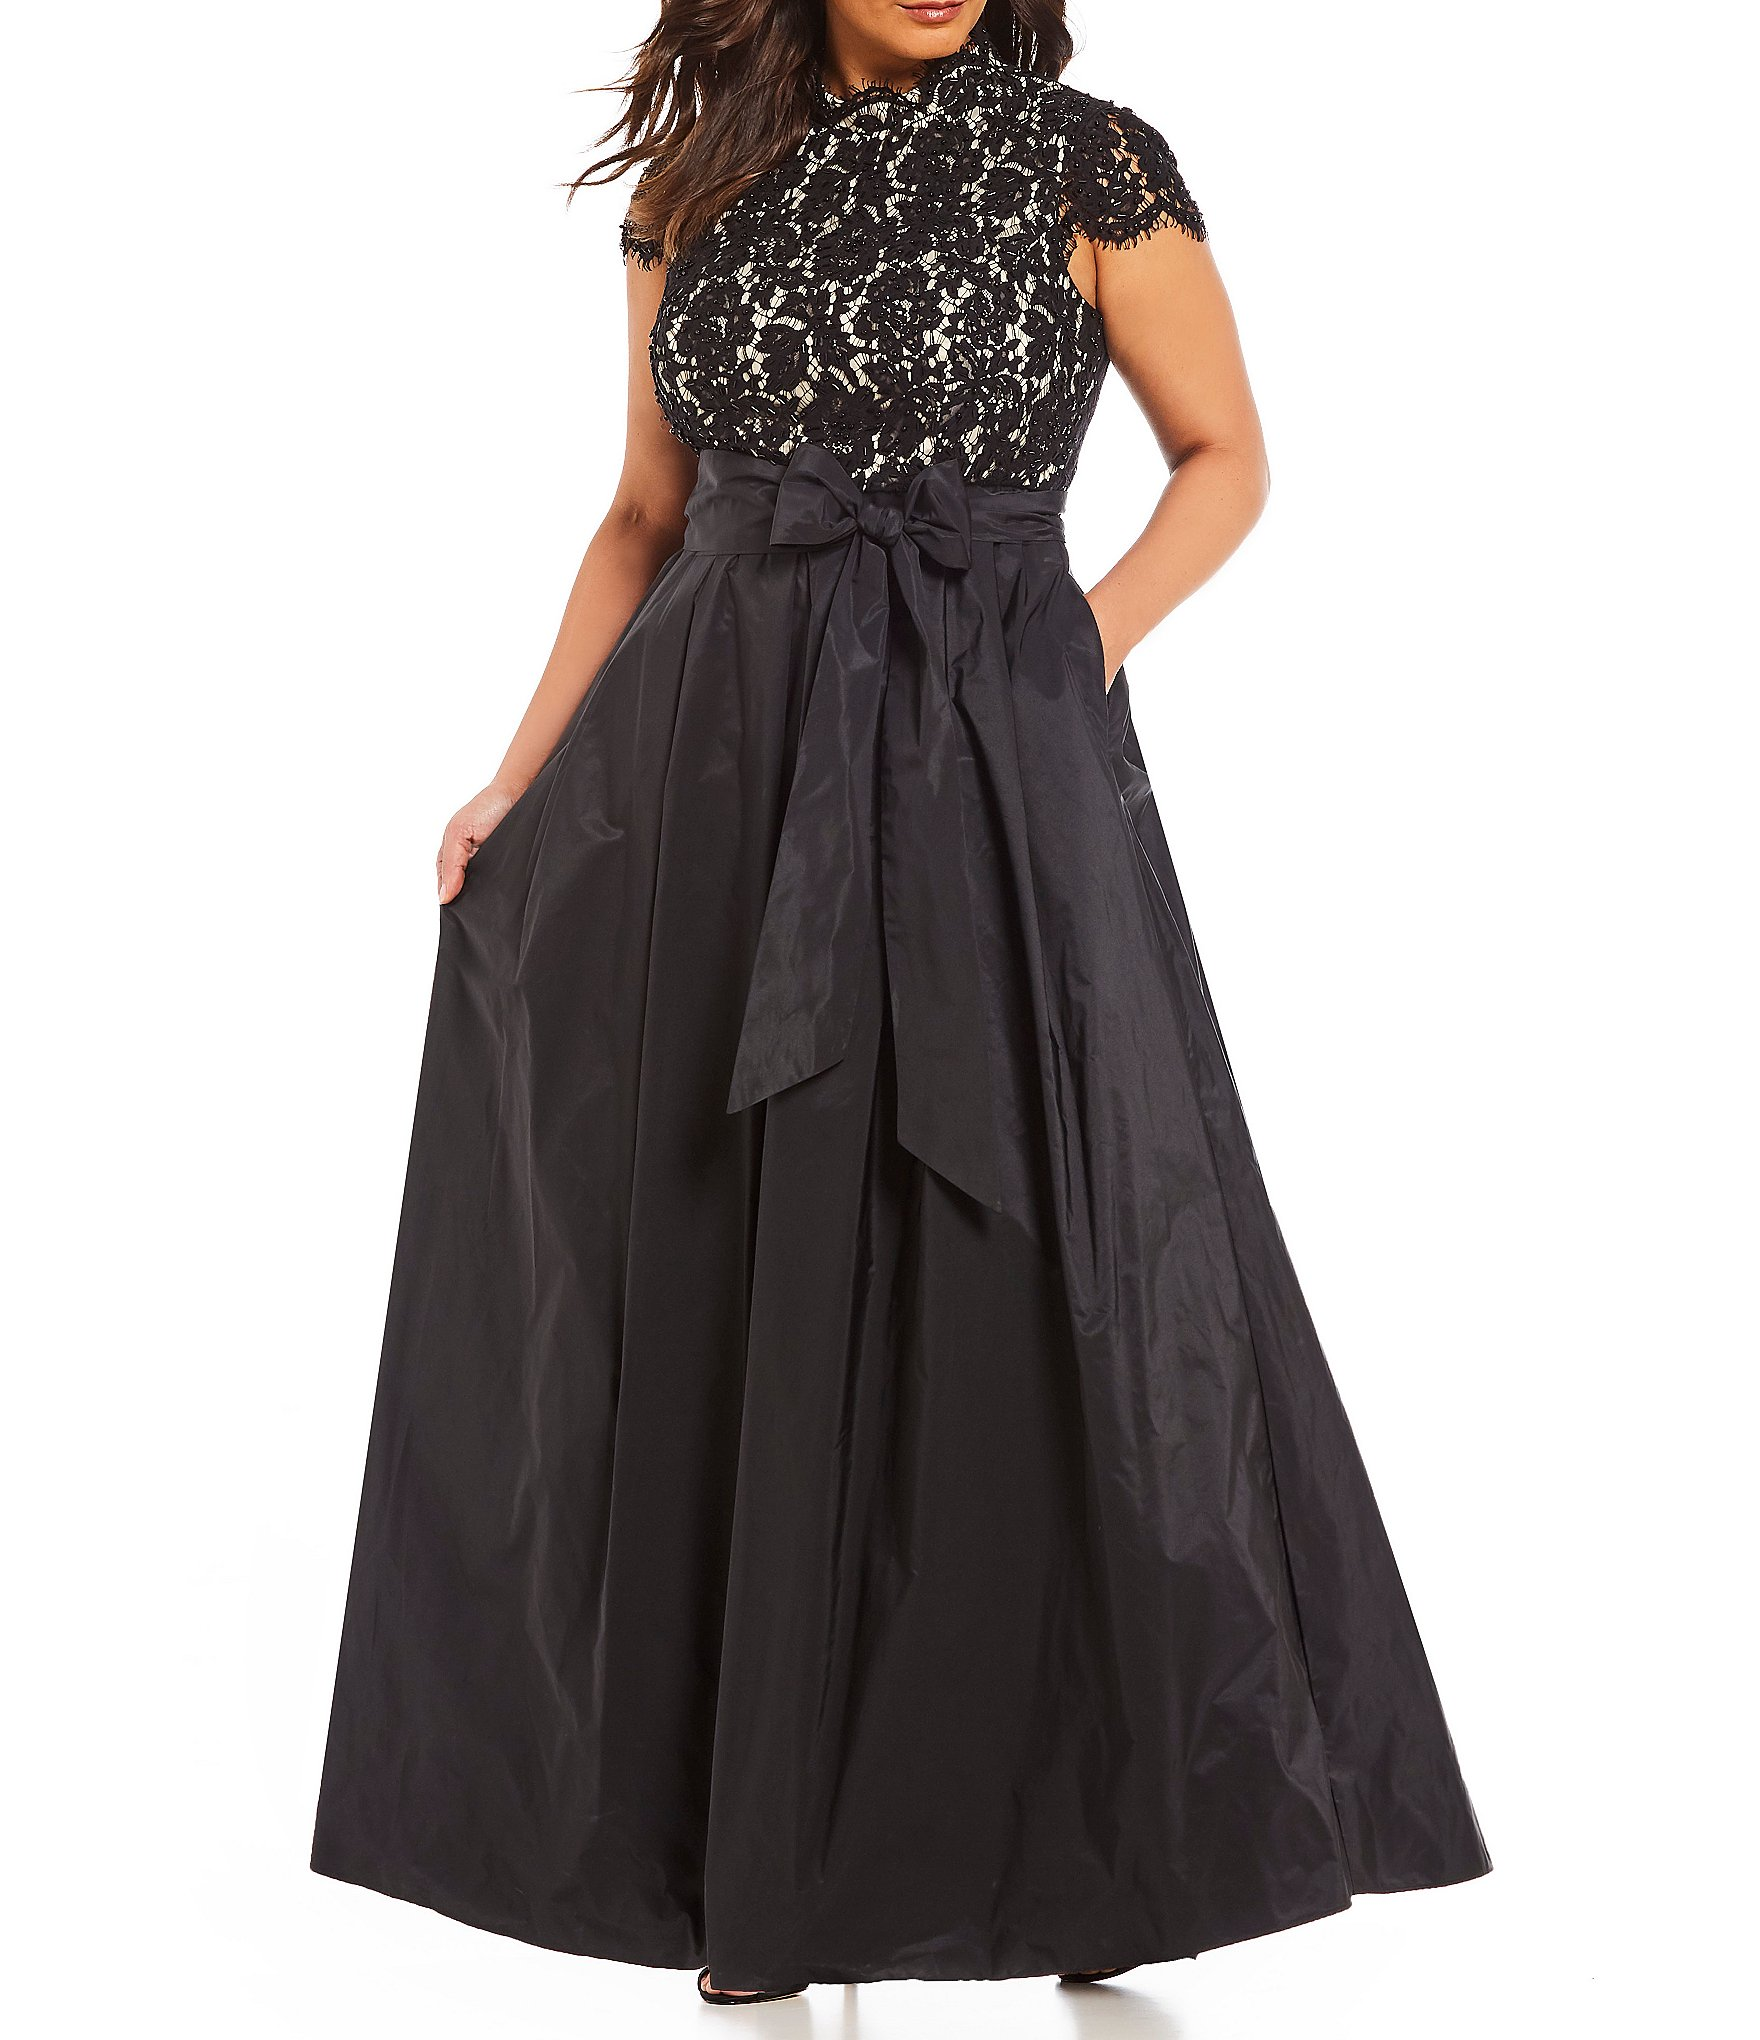 Plus Size Mother of the Bride Dresses & Gowns | Dillards